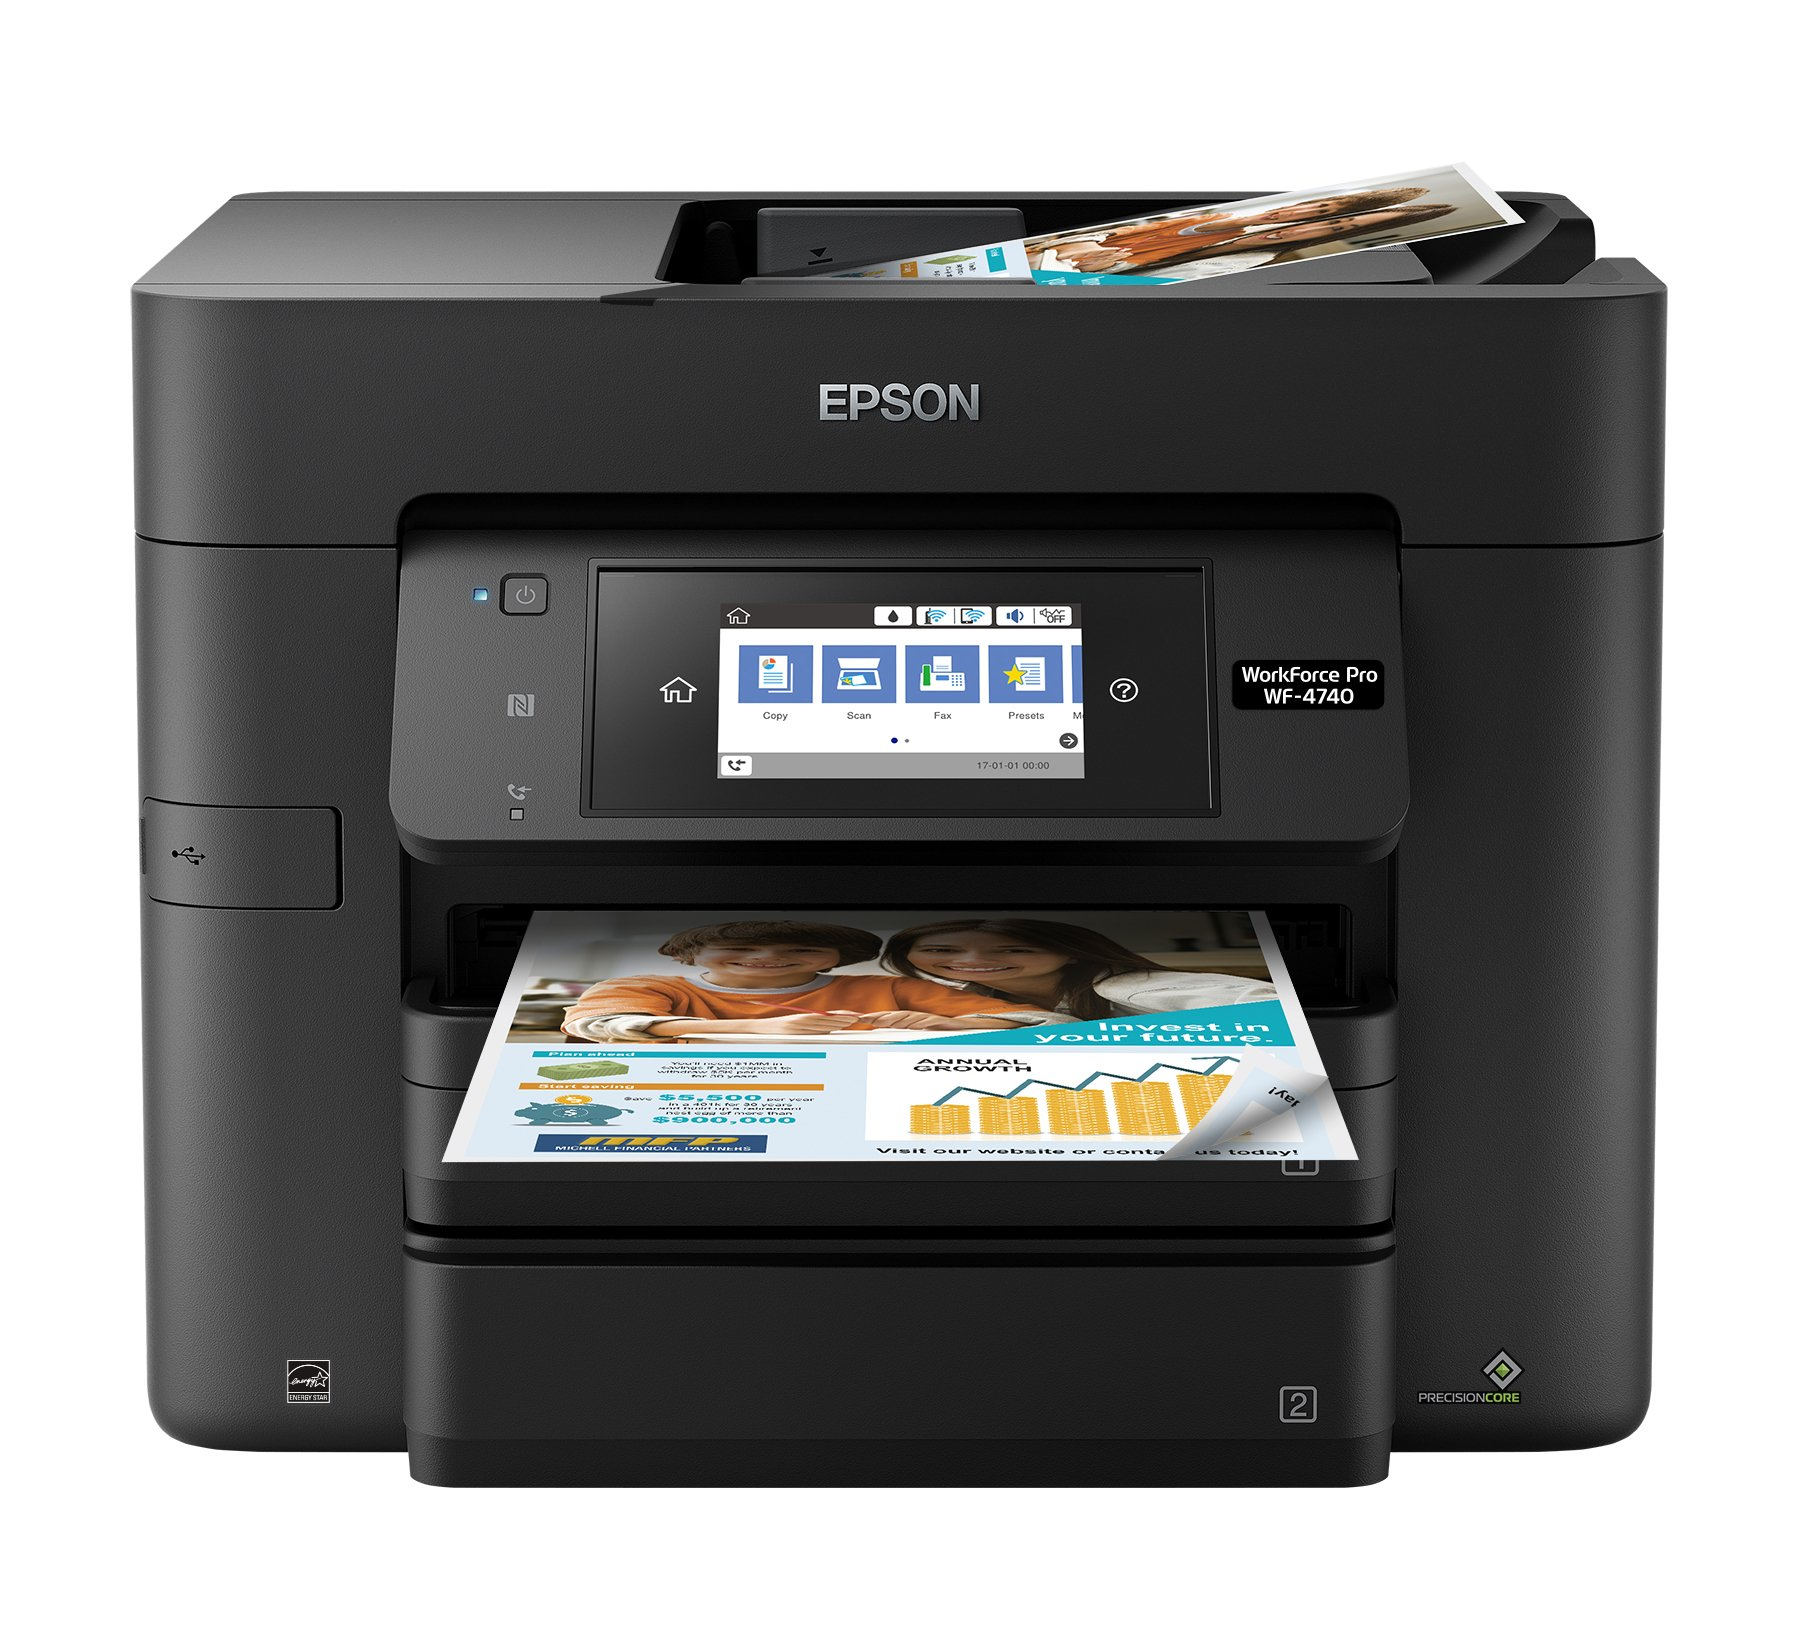 Epson WorkForce Pro WF-4740 Wireless All-in-One Color Inkjet Printer, Copier, Scanner with Wi-Fi Direct by Epson